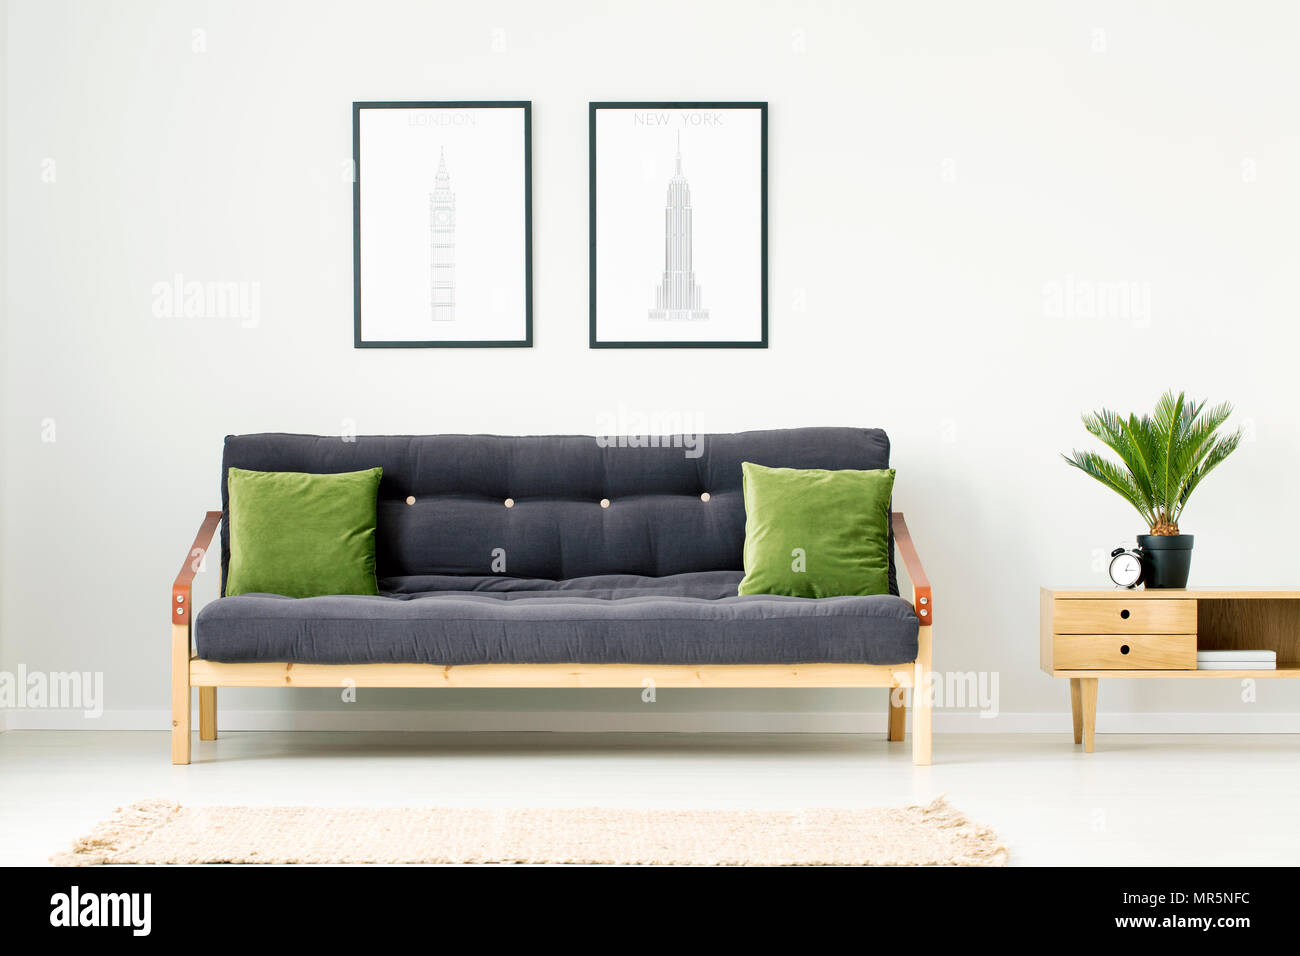 living room clocks next white sectional set dark grey sofa cushions in stock photos plant and clock on wooden cupboard to a settee with green natural